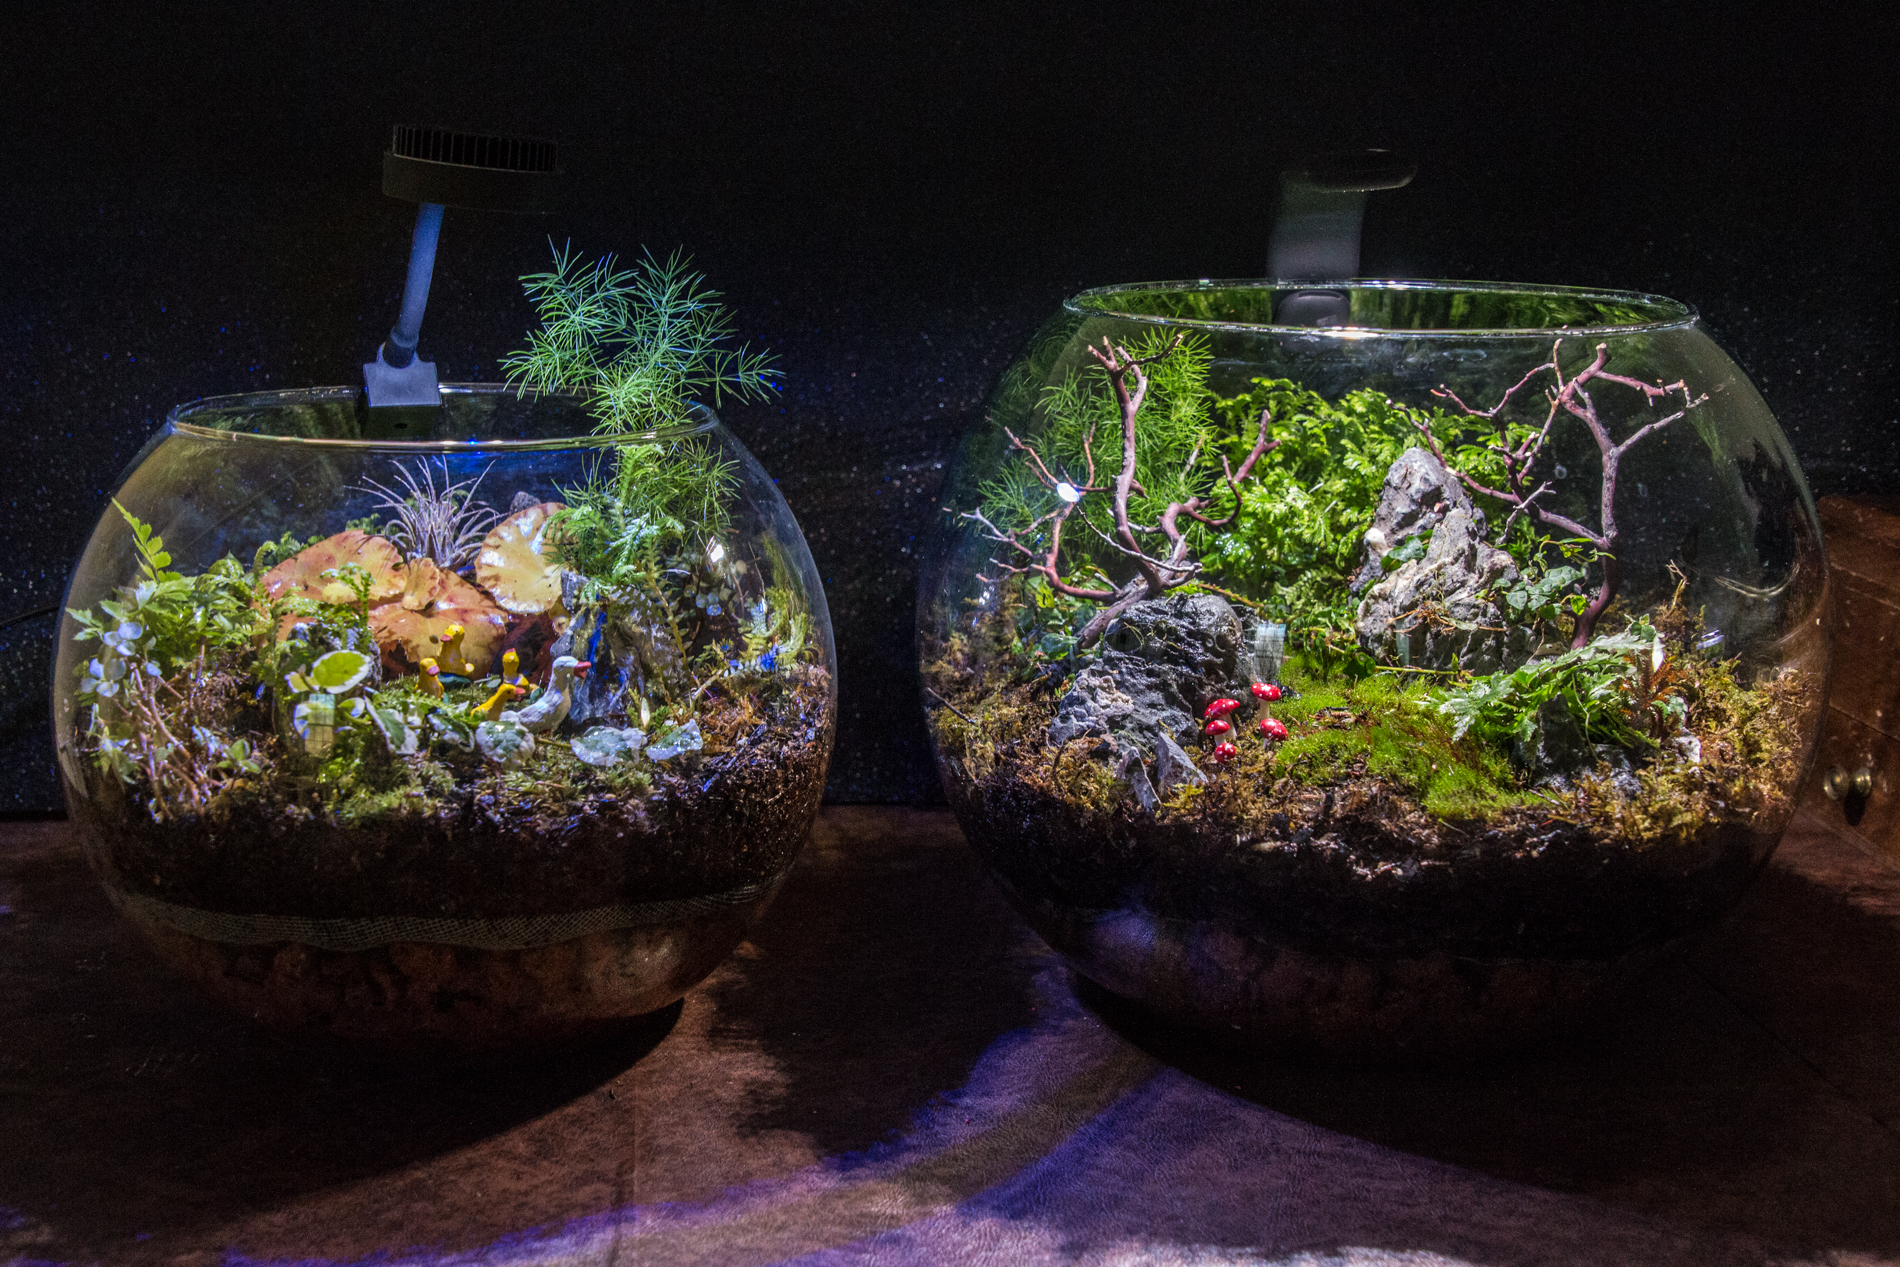 ZetLight (left) and AquaLighter (right) on two globe shaped terrariums. These can bring a spot of sunshine to any corner of any room in the house!